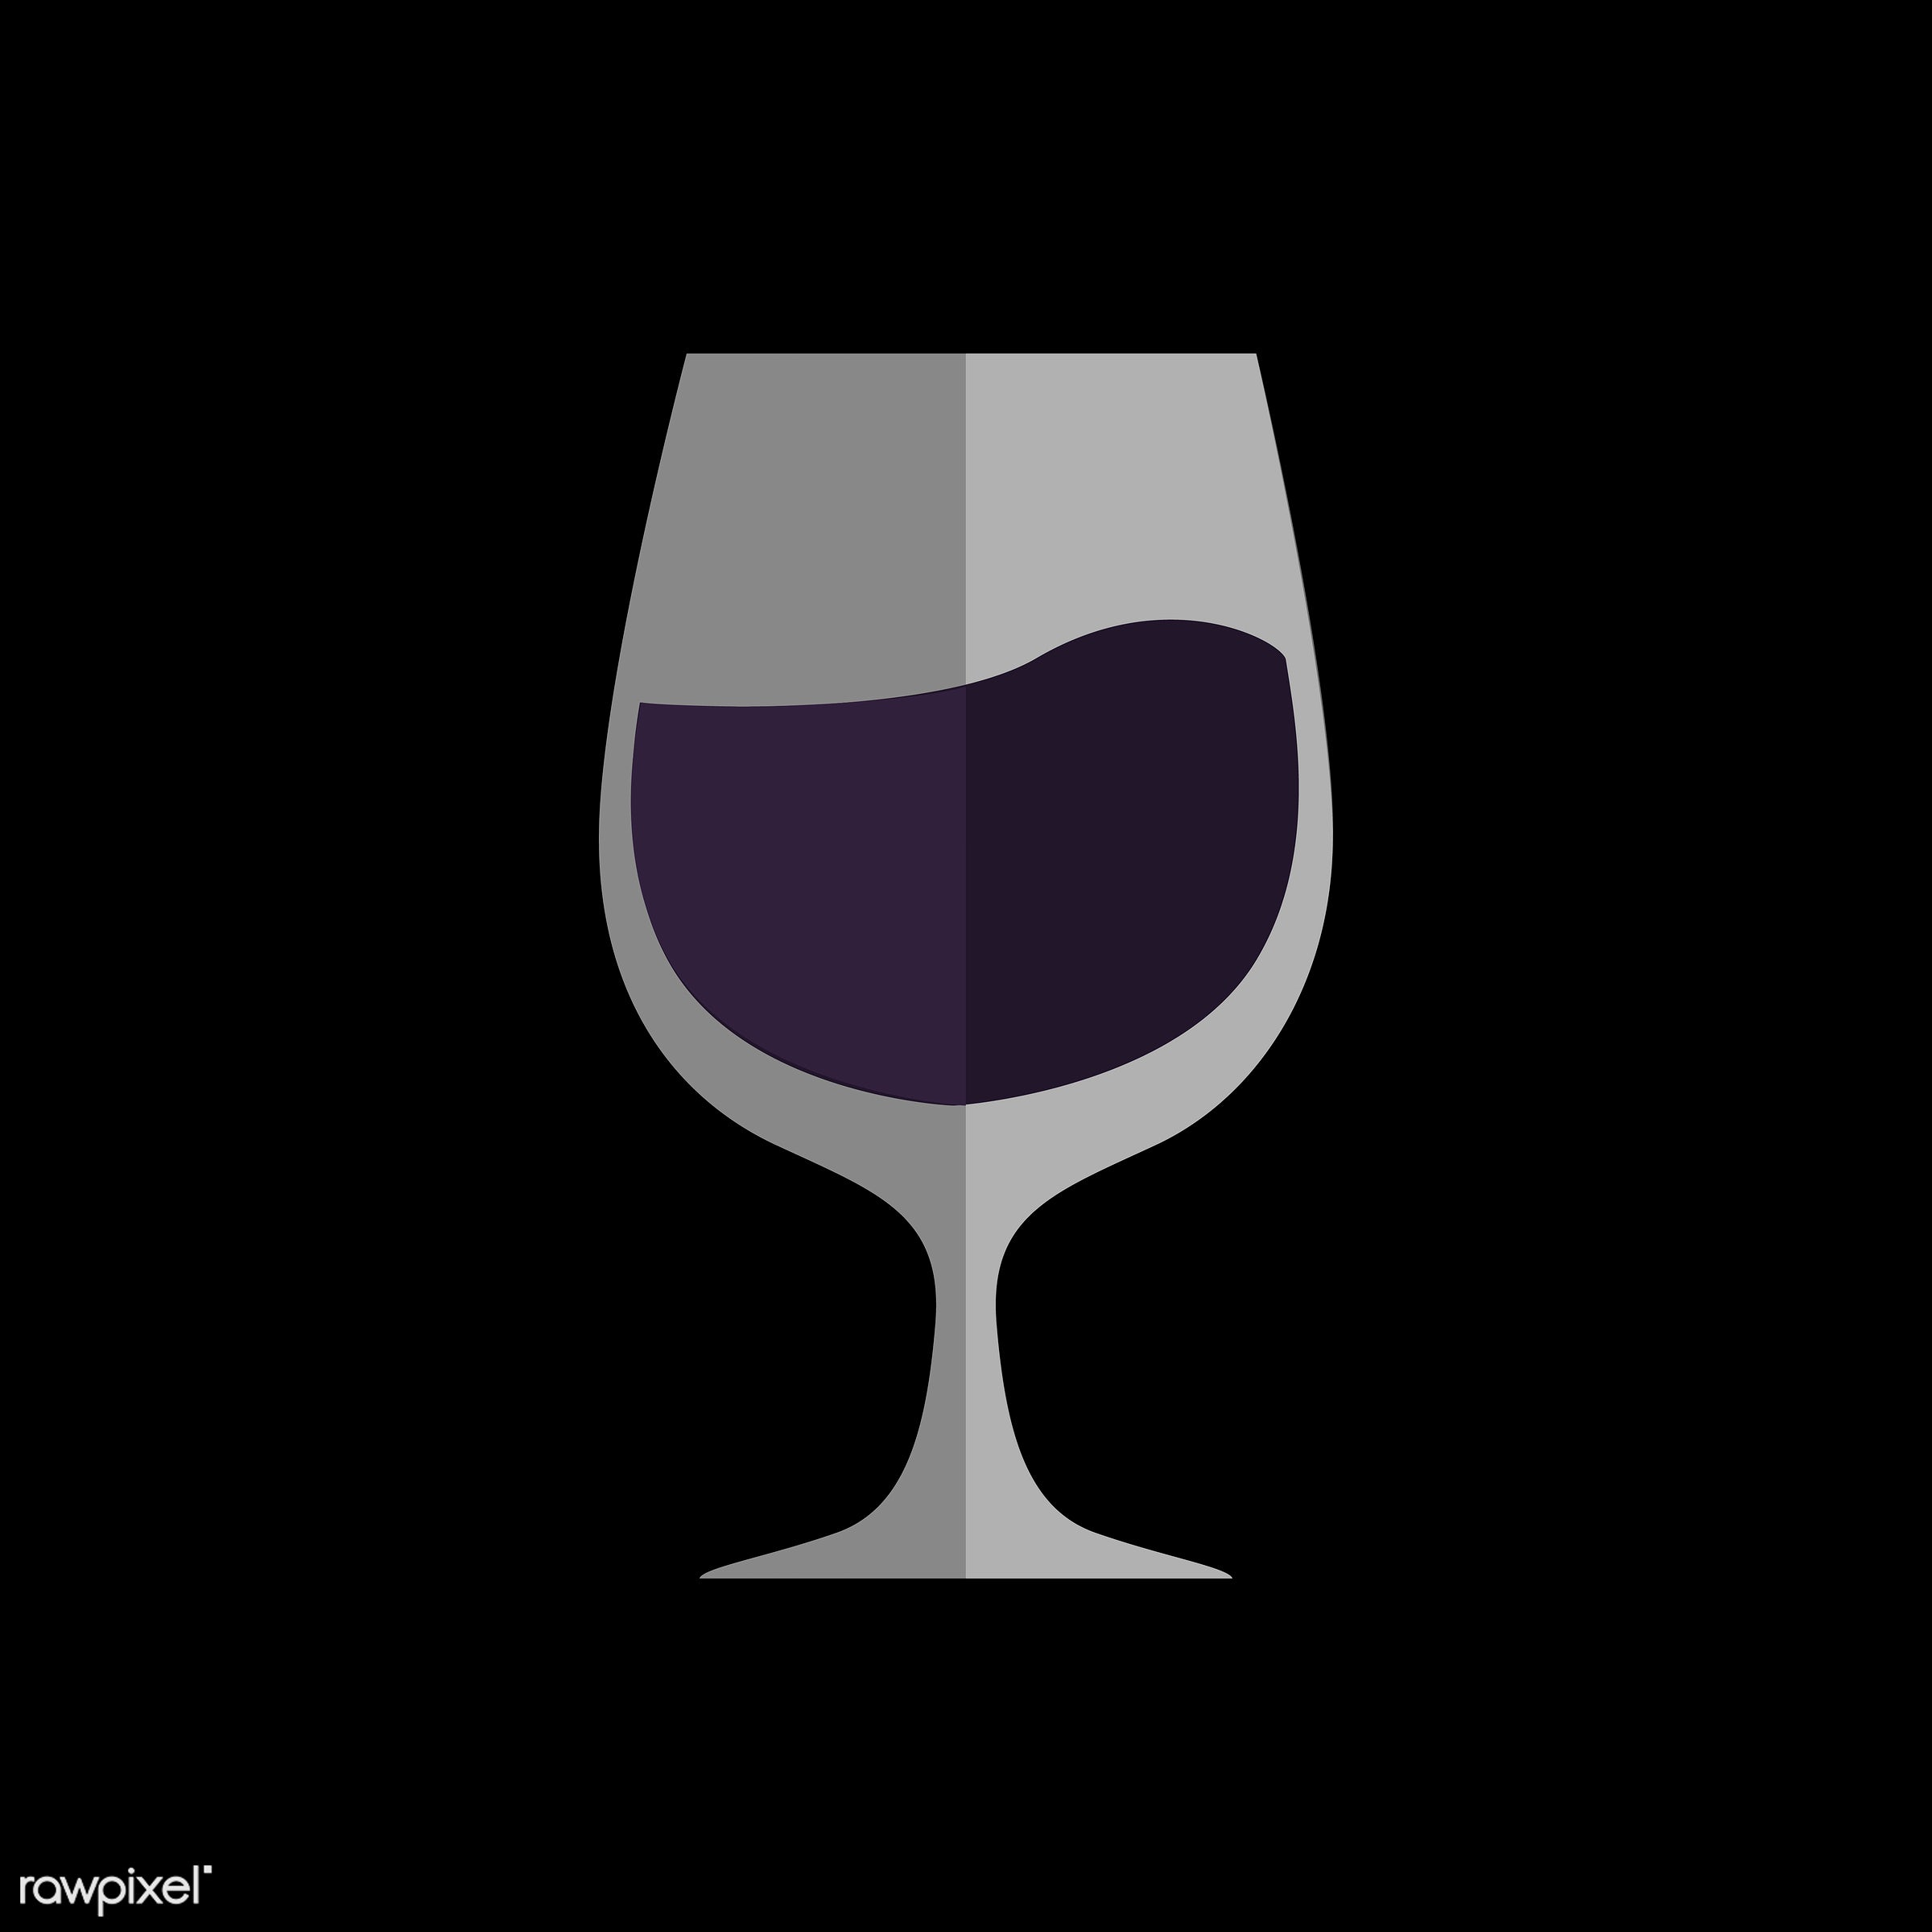 vector, graphic, illustration, icon, symbol, colorful, cute, drink, beverage, water, purple, liqueur, wine, glass